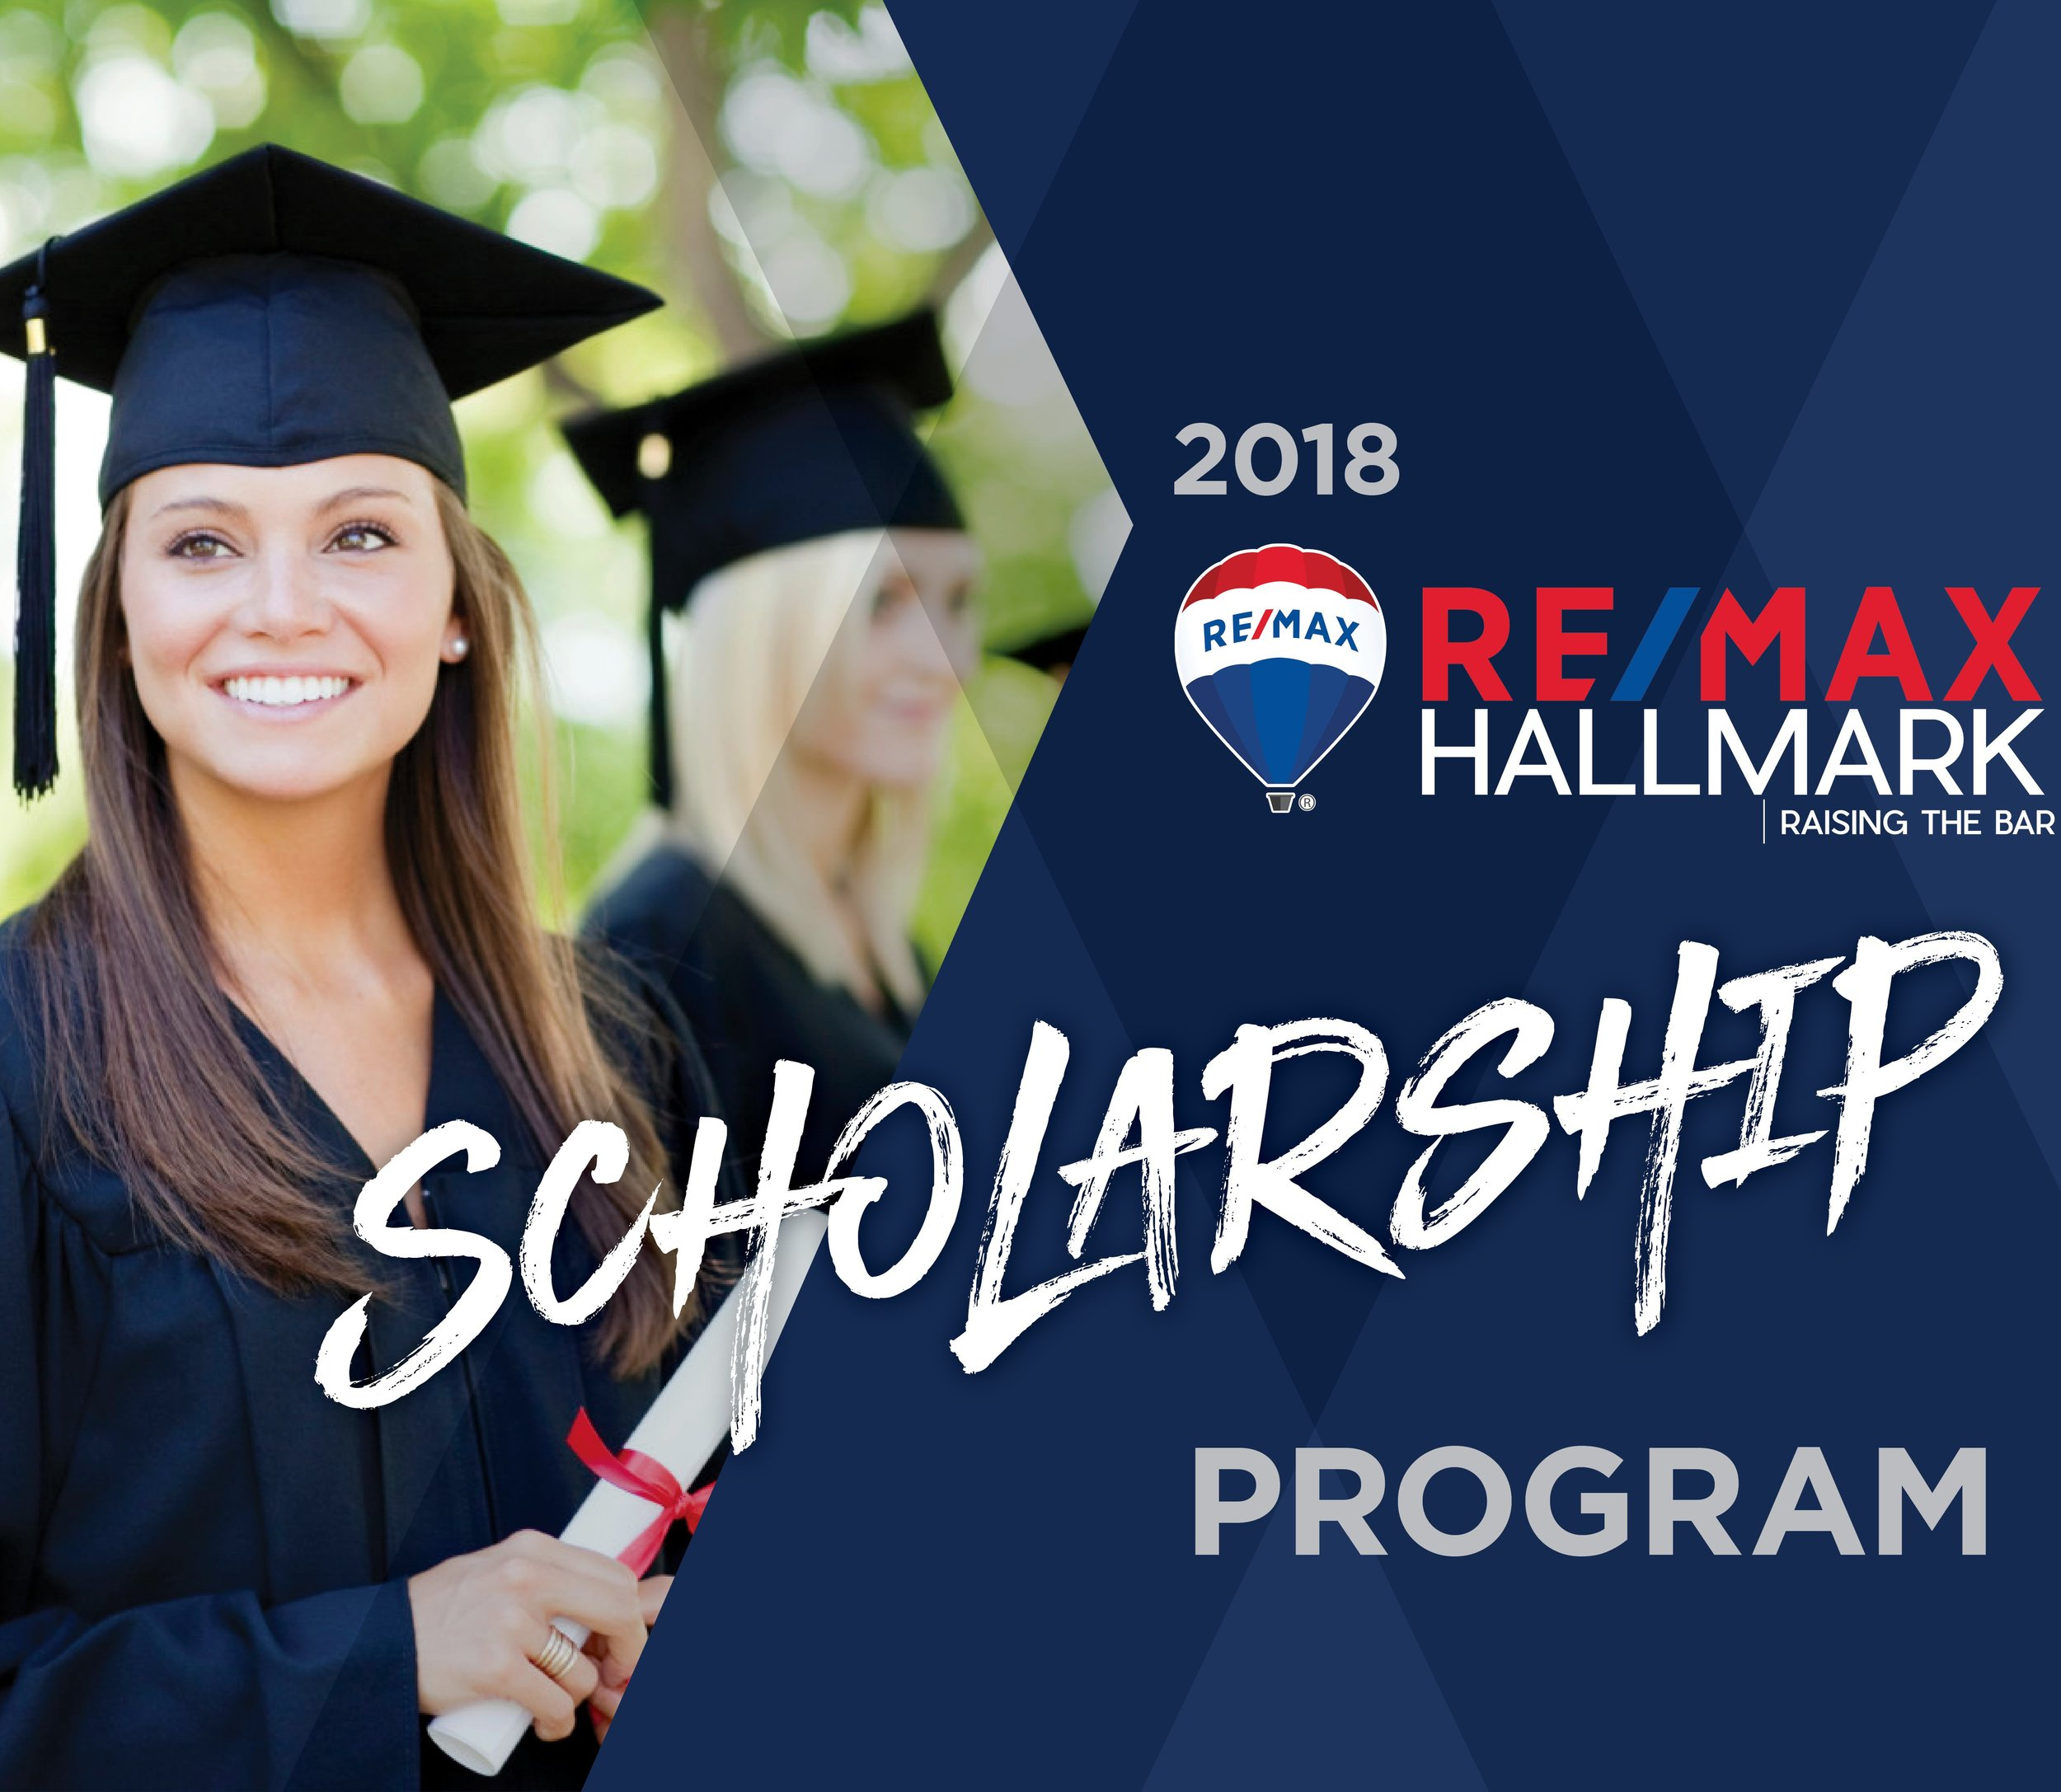 2018 Scholarship Program - Just Image.jpg